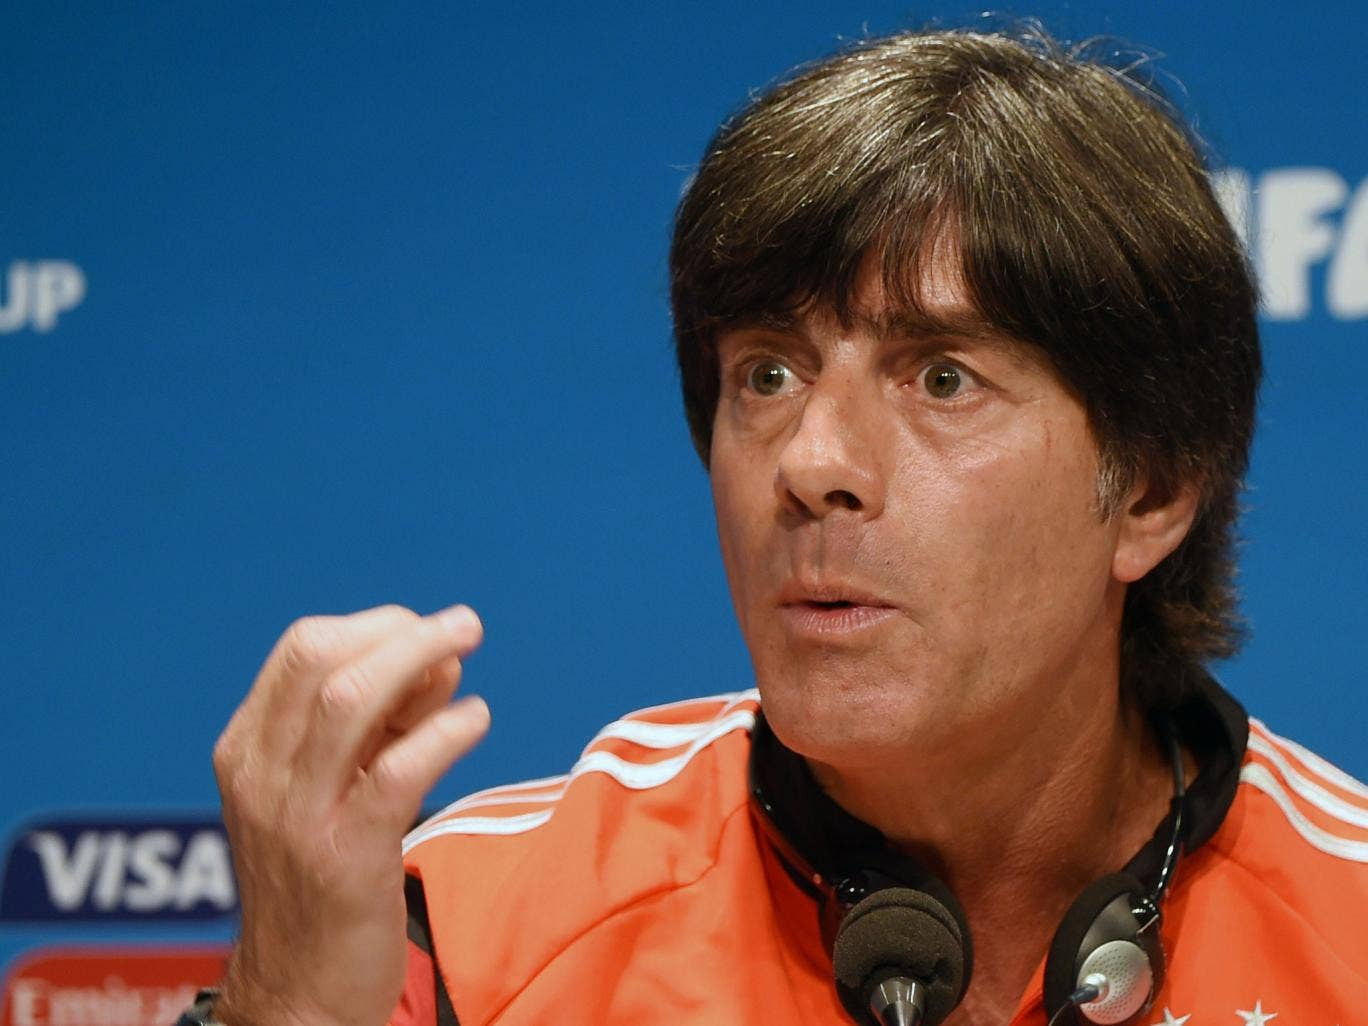 Joachim Löw speaks to the press ahead of the France fixture